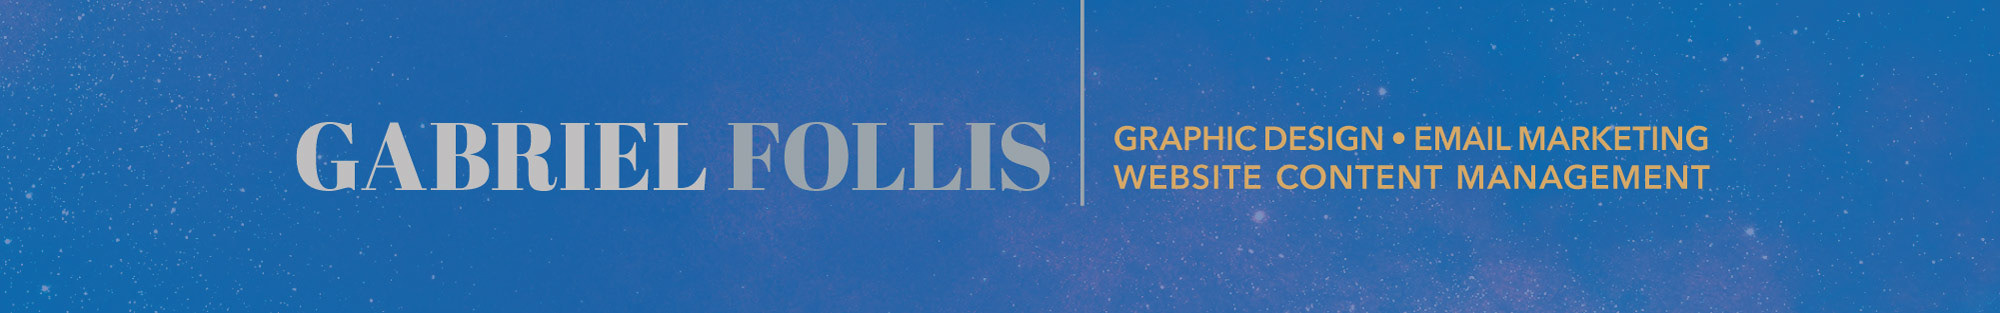 Gabriel Follis - Graphic Design + Email/Web Marketing